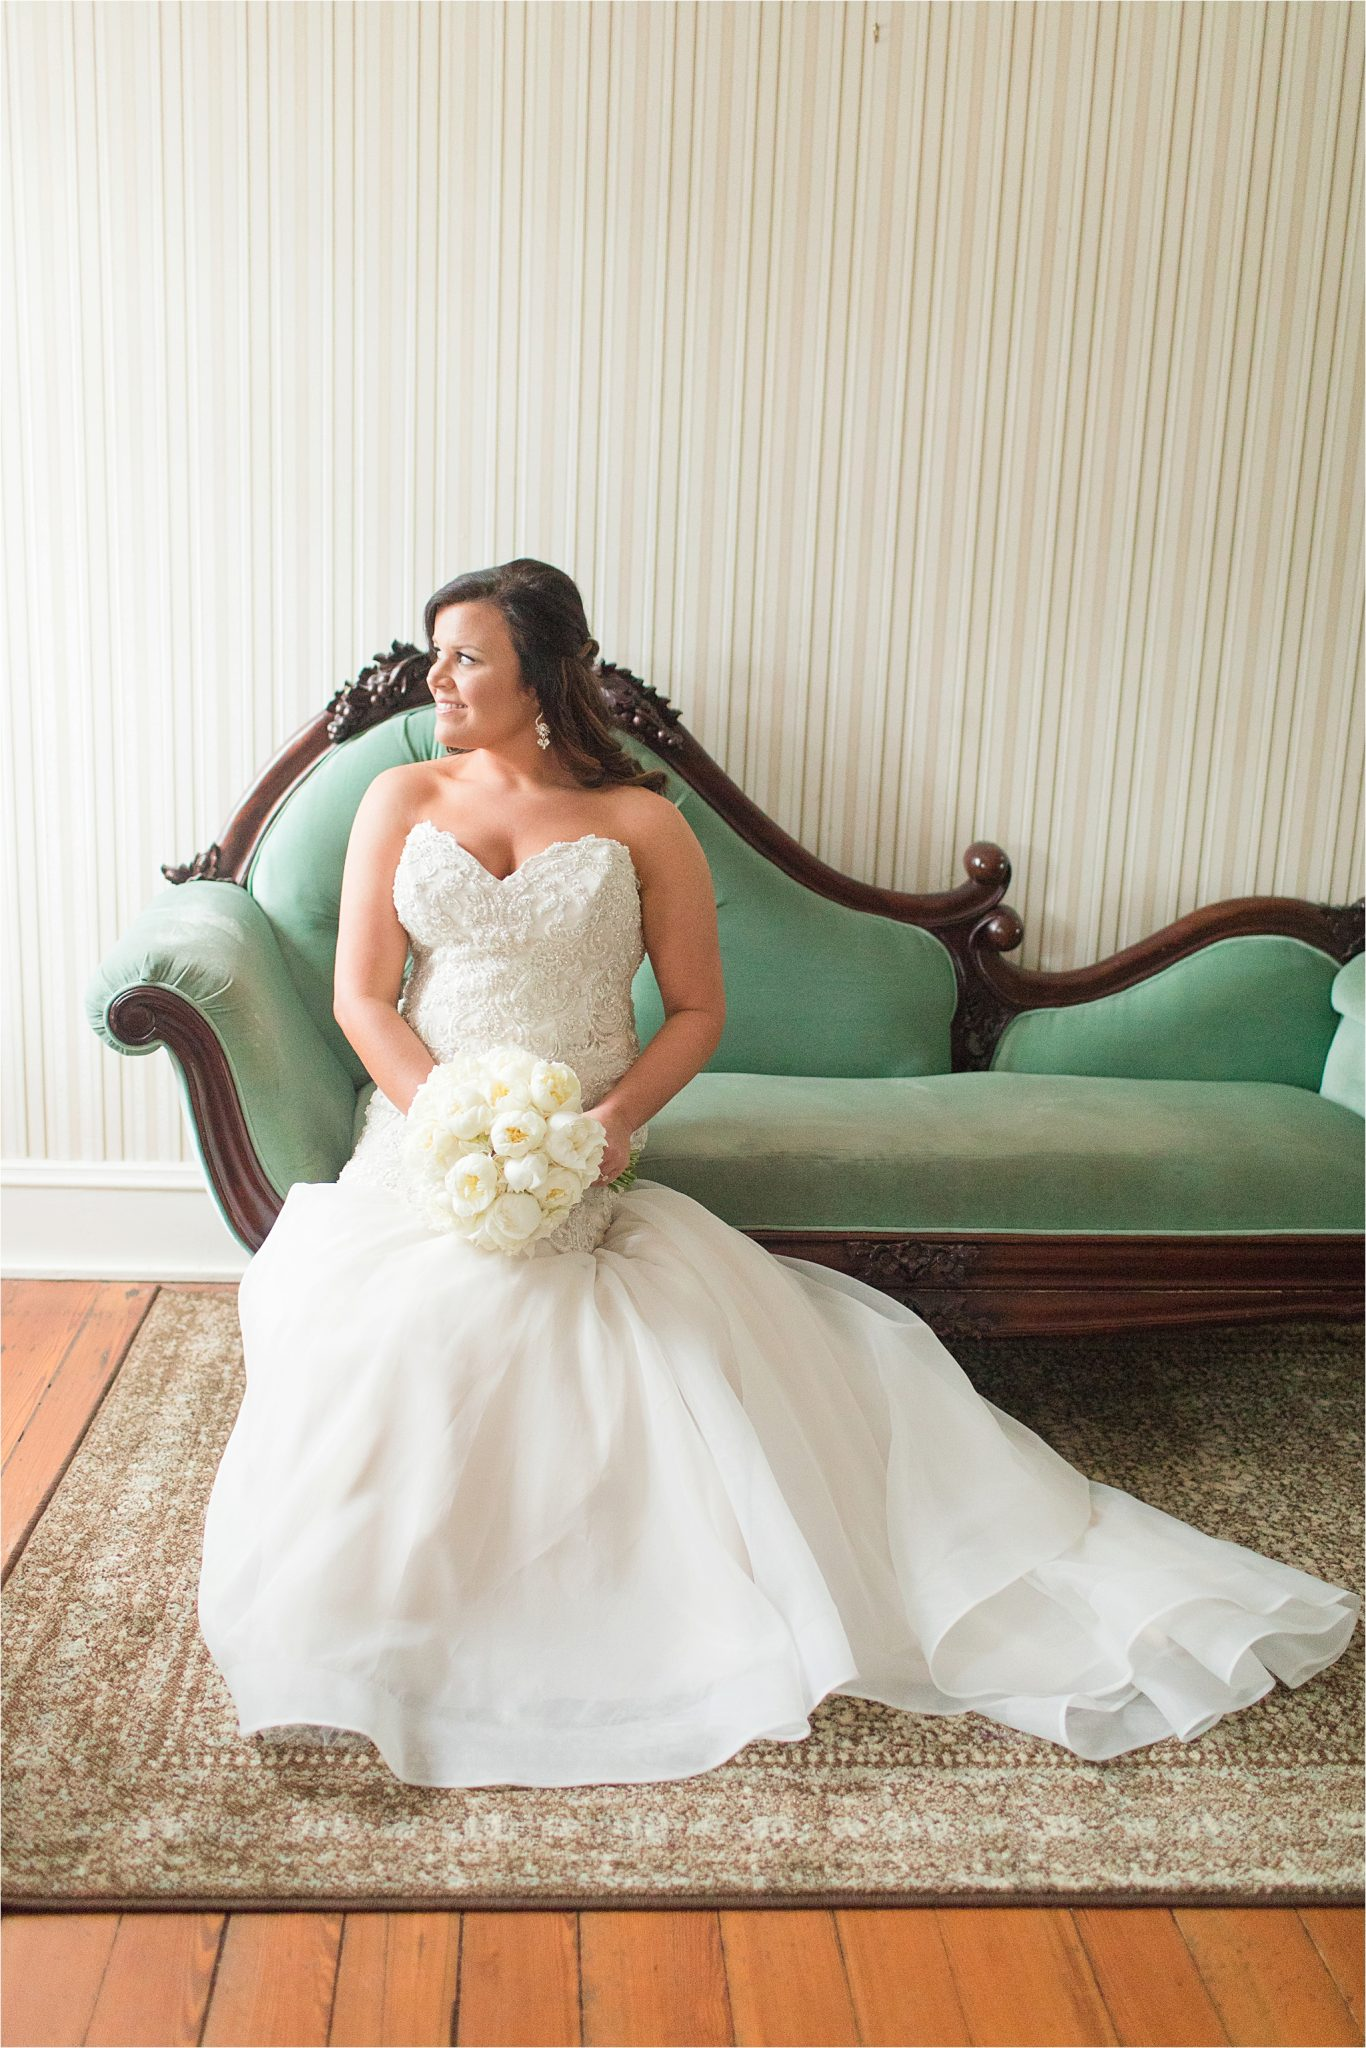 bride on antique couch-antique teal couch-mermaid style wedding dress-strapless